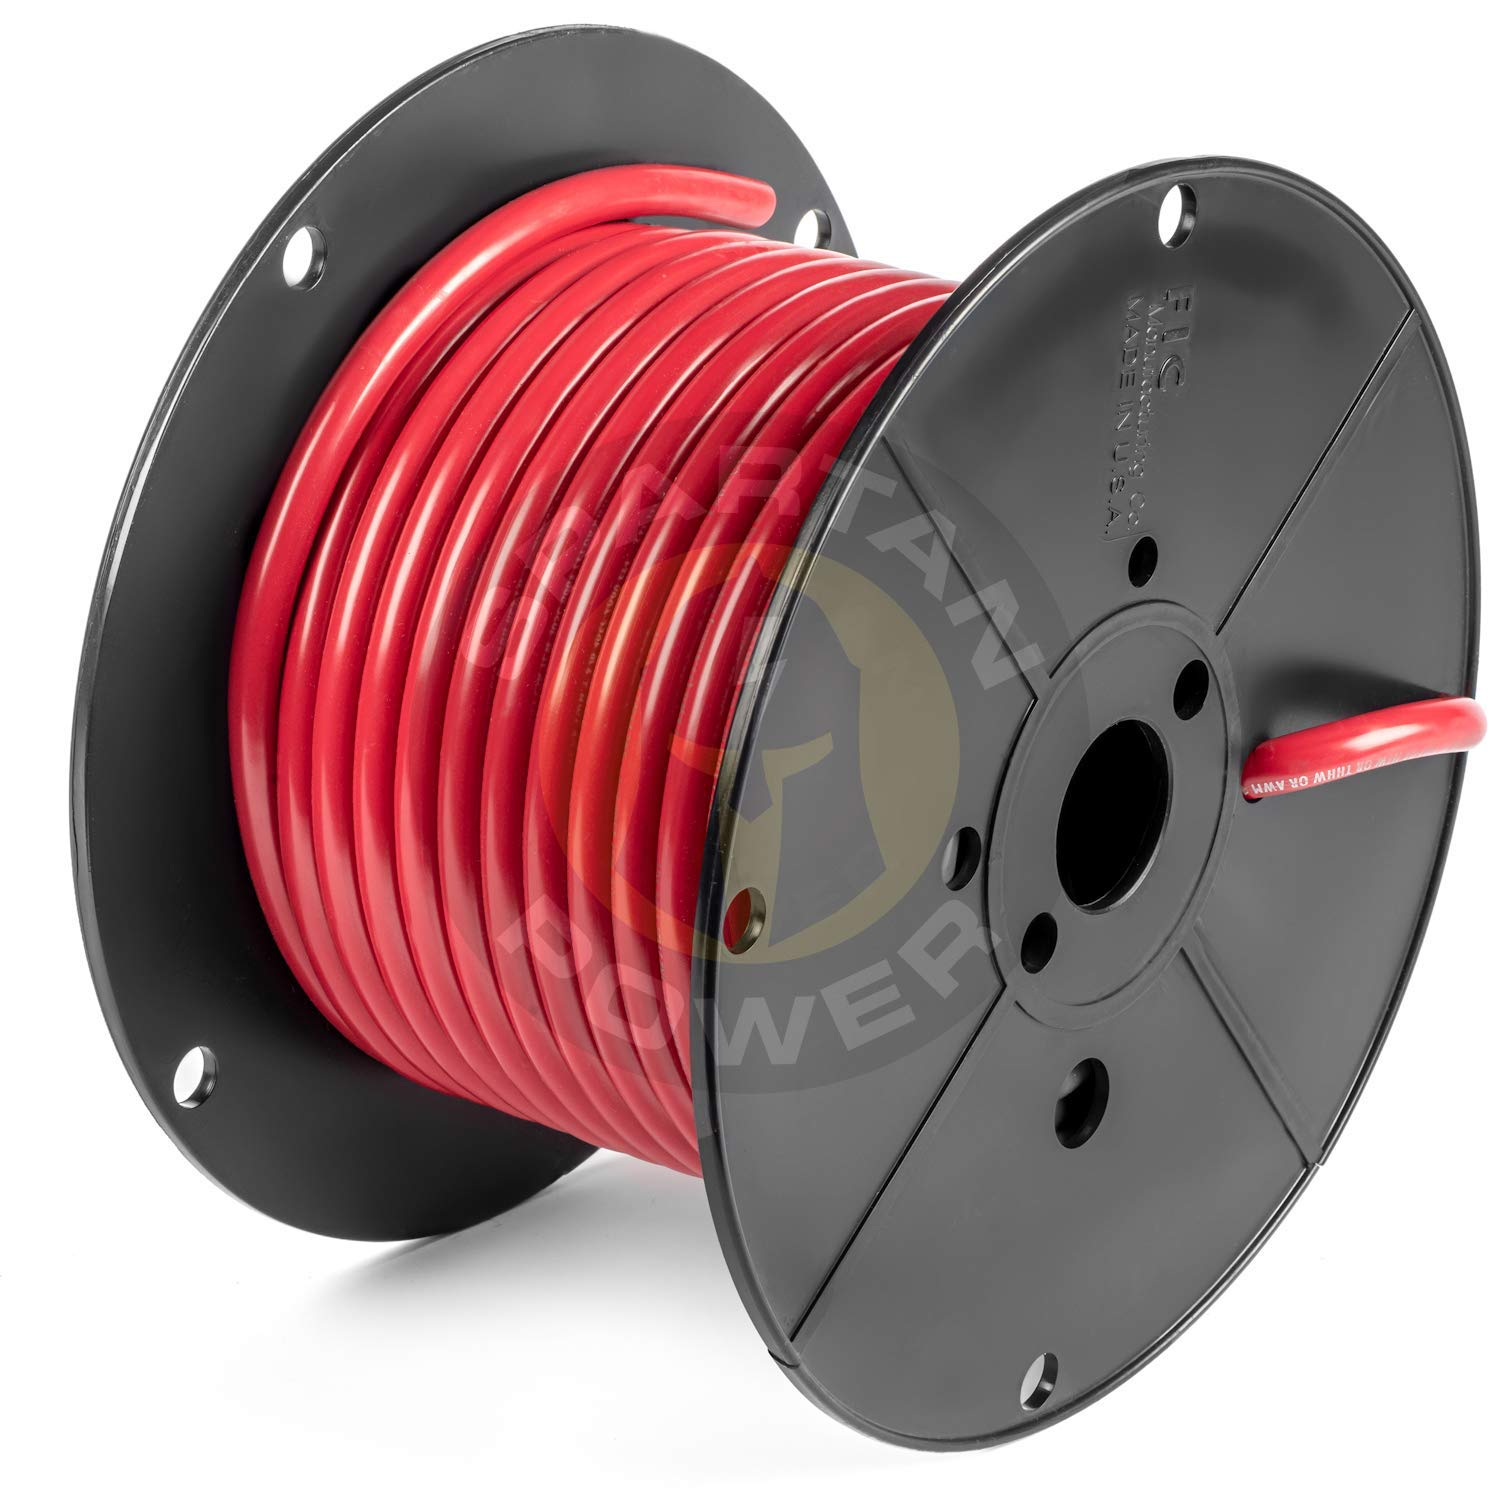 100 Feet Red 2 AWG Battery Cable by Spartan Power Made in The USA UL Listed 100% Pure Cooper Wire by Spartan Power